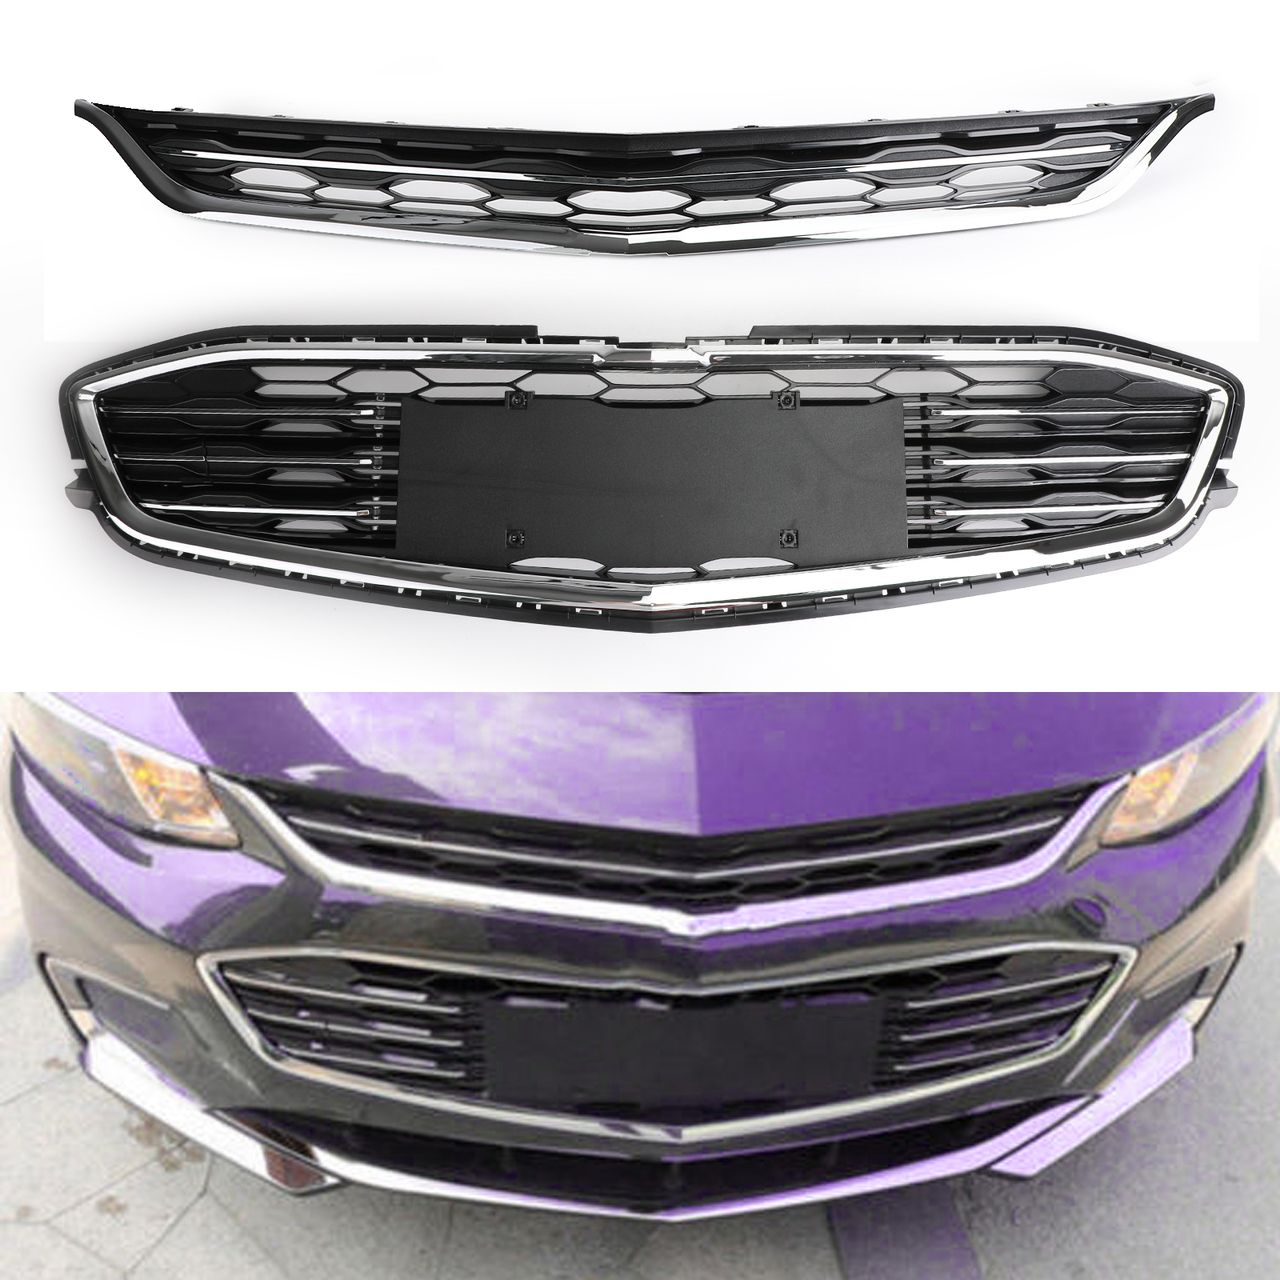 Mad Hornets Honeycomb Mesh Chrome Front Bumper Upper With